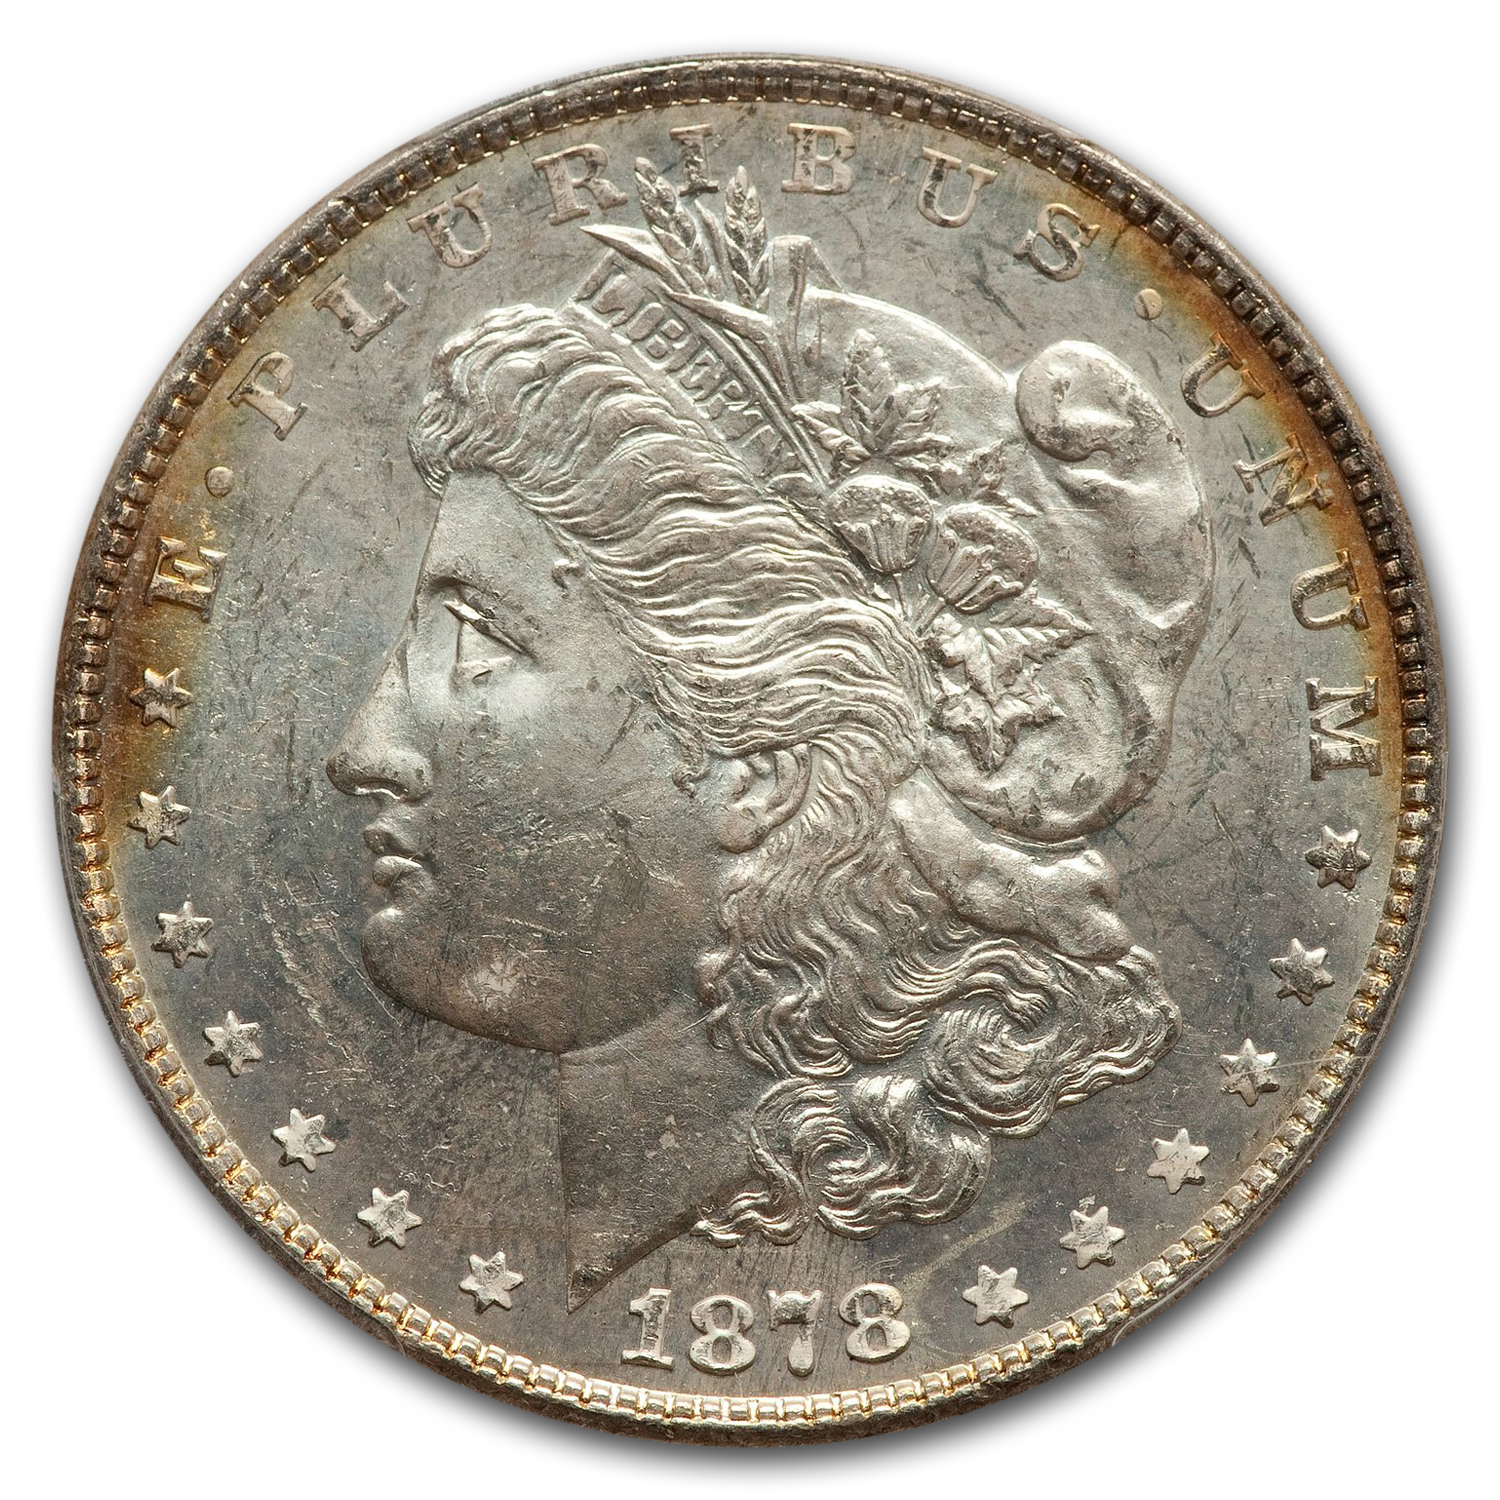 1878 Morgan Dollar - 7 Tailfeathers Rev. of 78 MS-63 DMPL PCGS